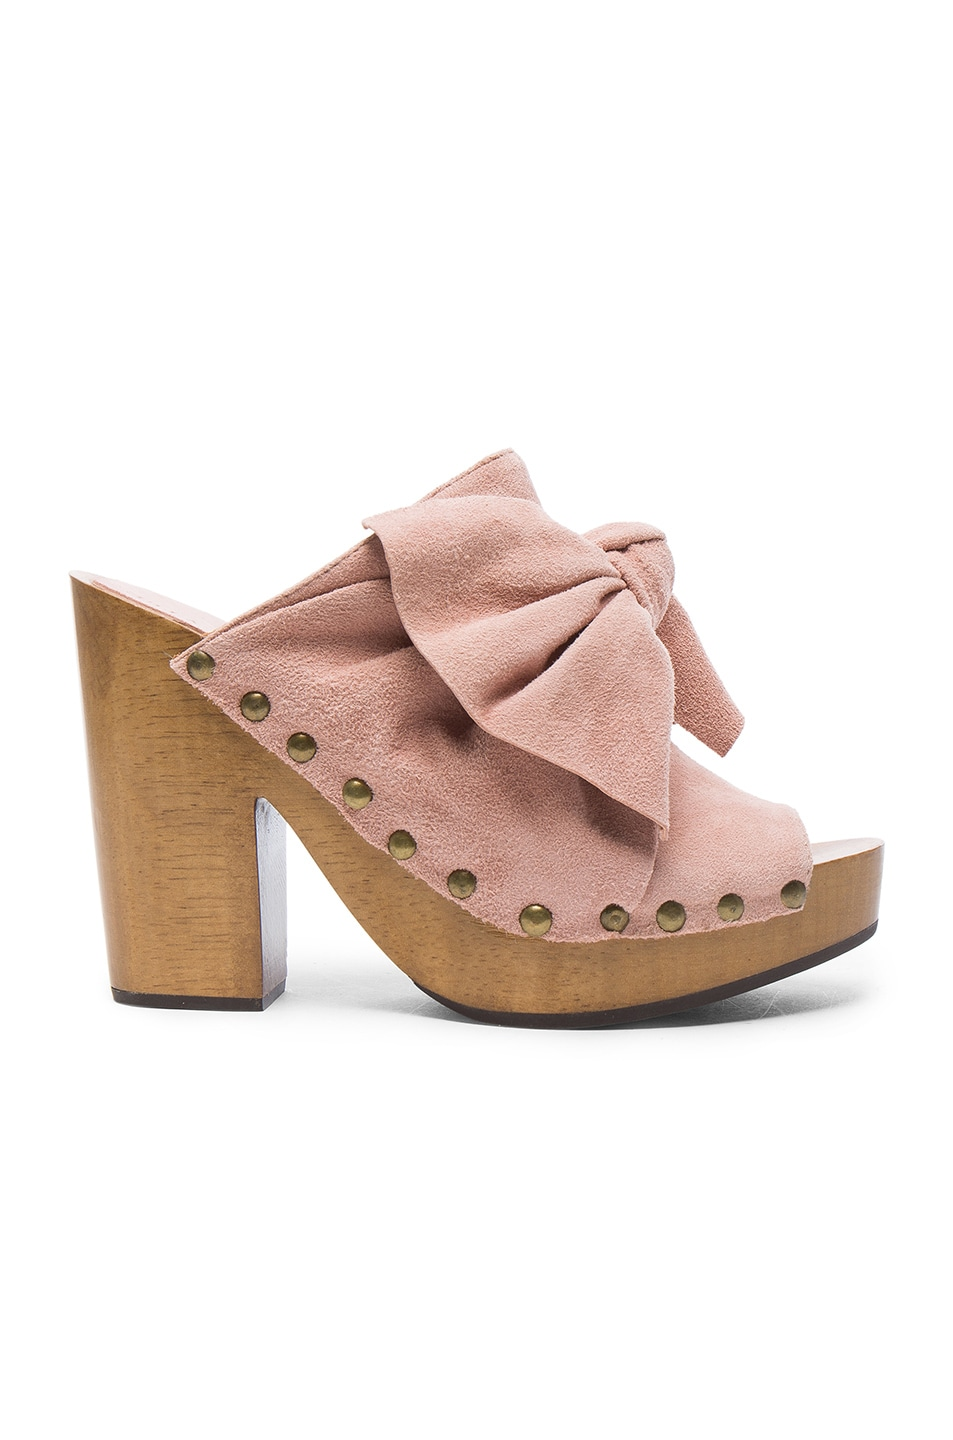 Image 1 of Ulla Johnson Suede Stevie Clogs in Rose Suede